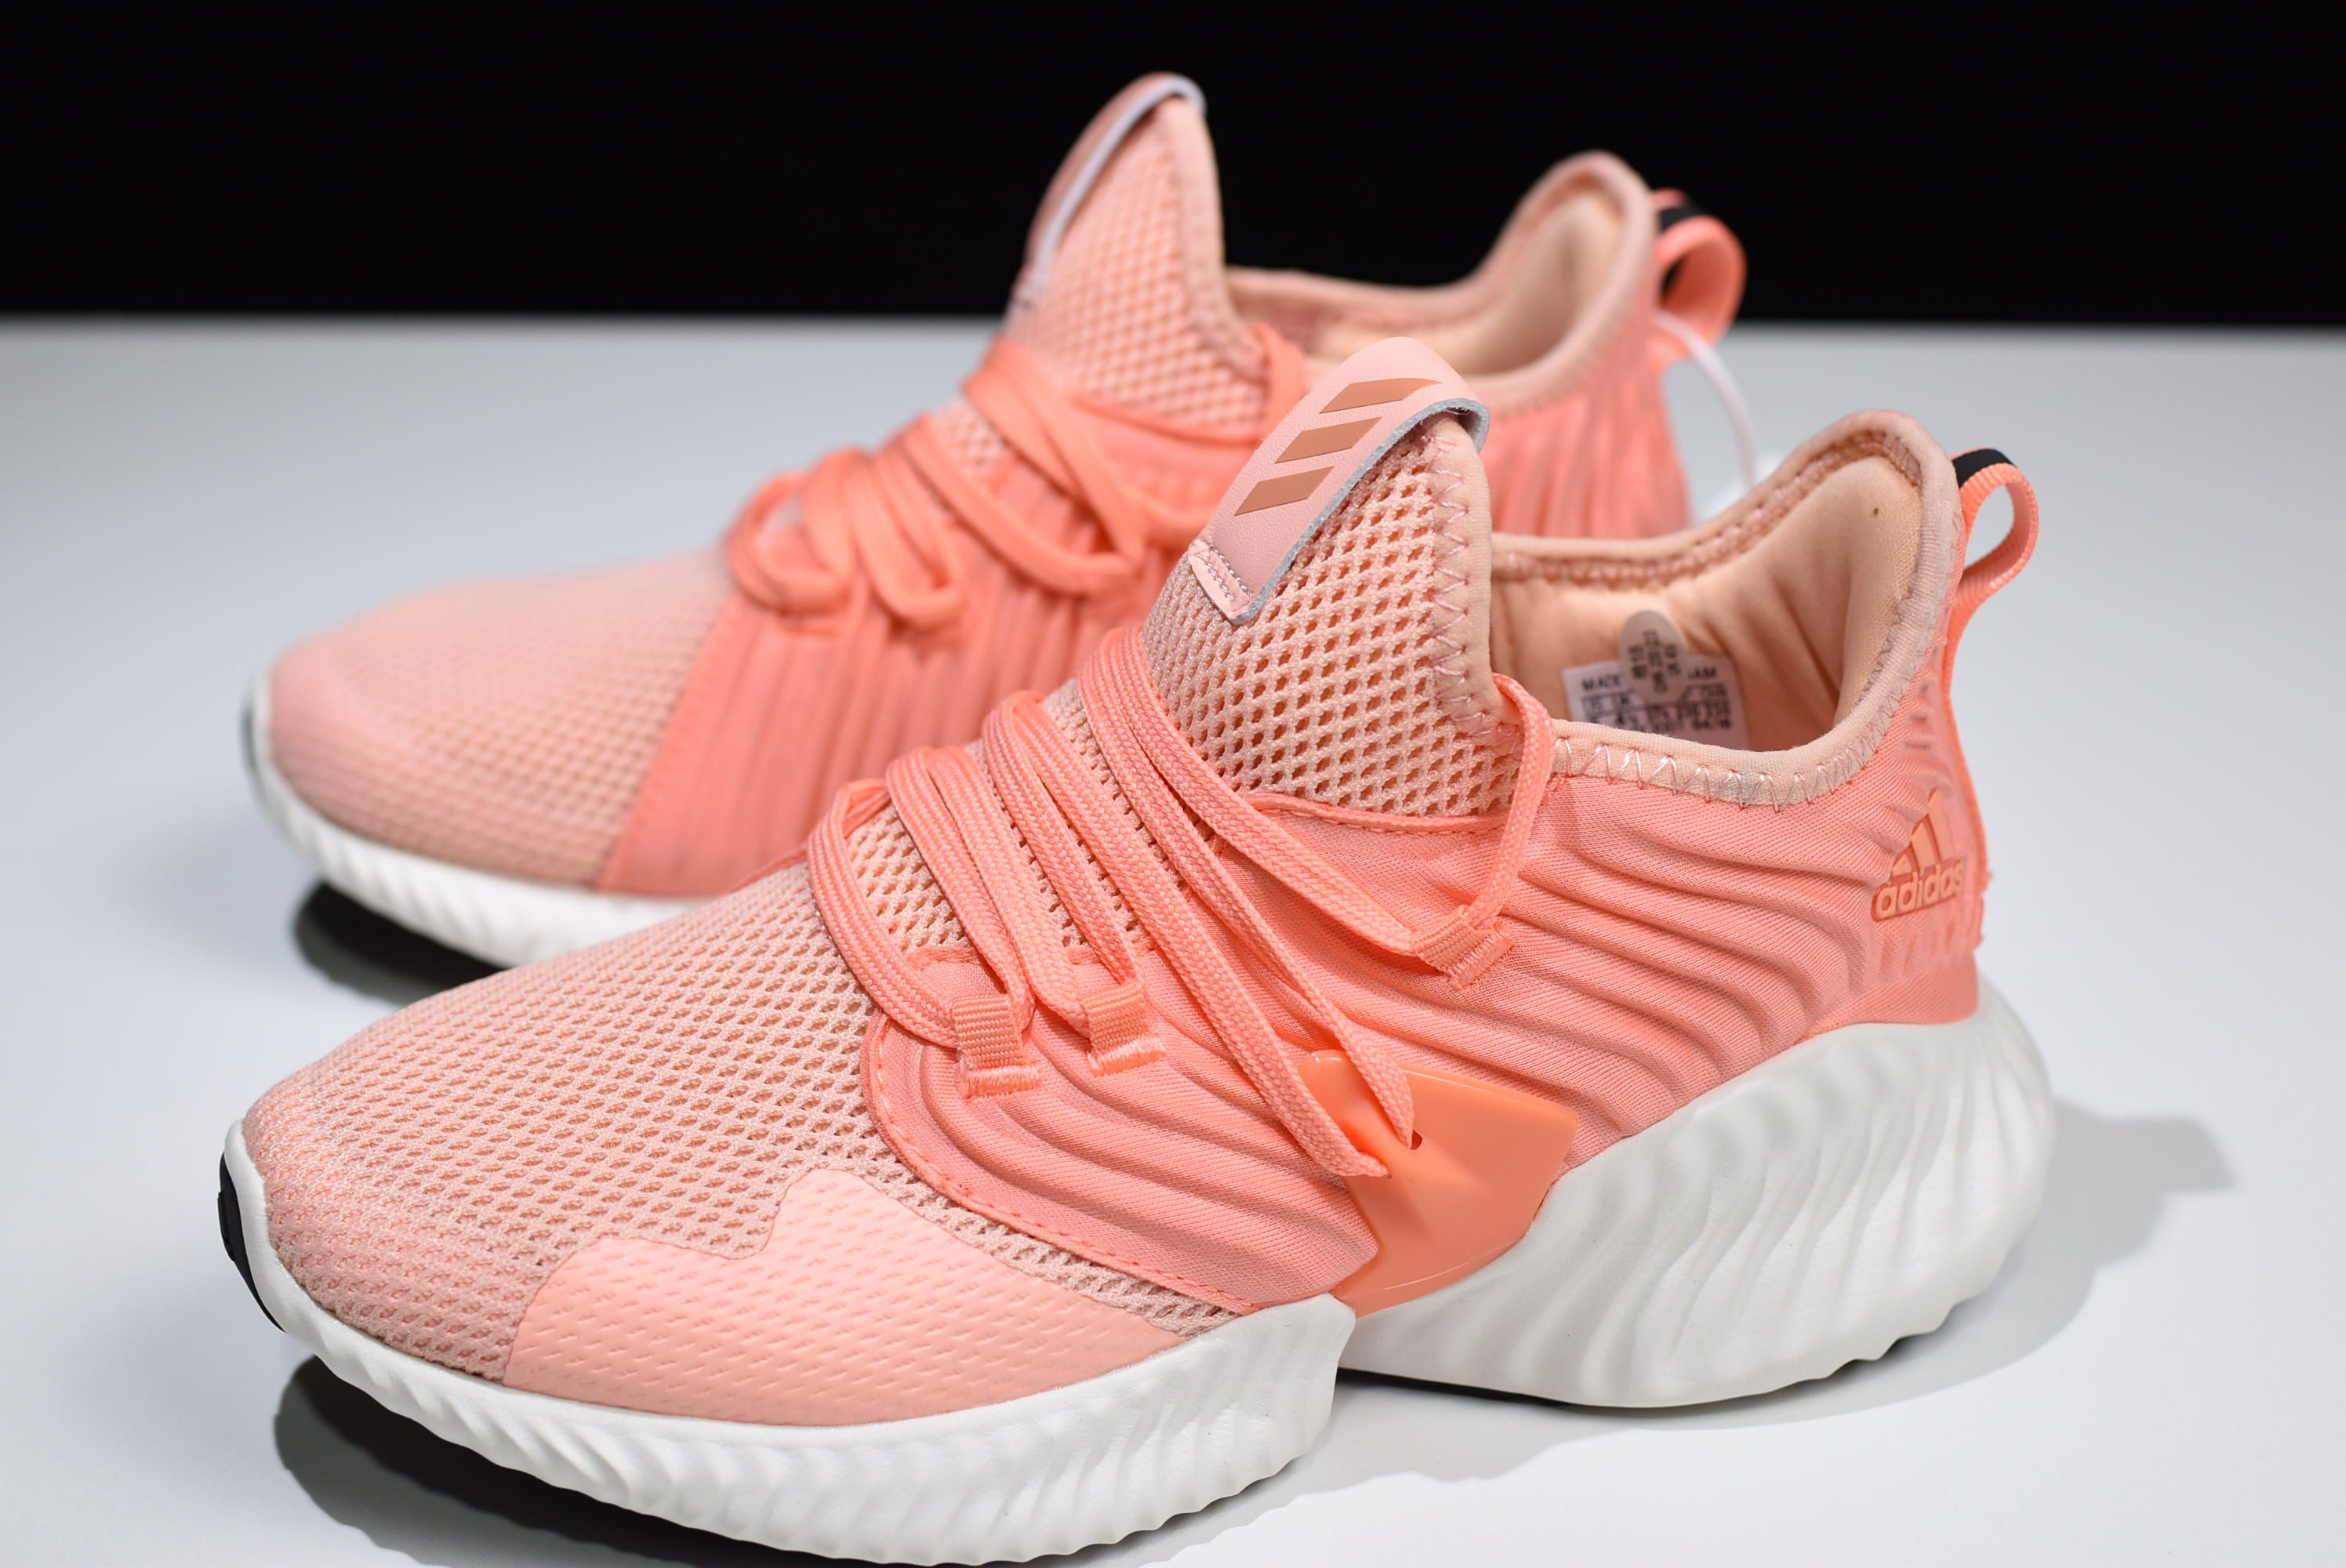 b4667429bd1 Women s adidas Alphabounce Instinct CC W Coral Pink White D97284 ...